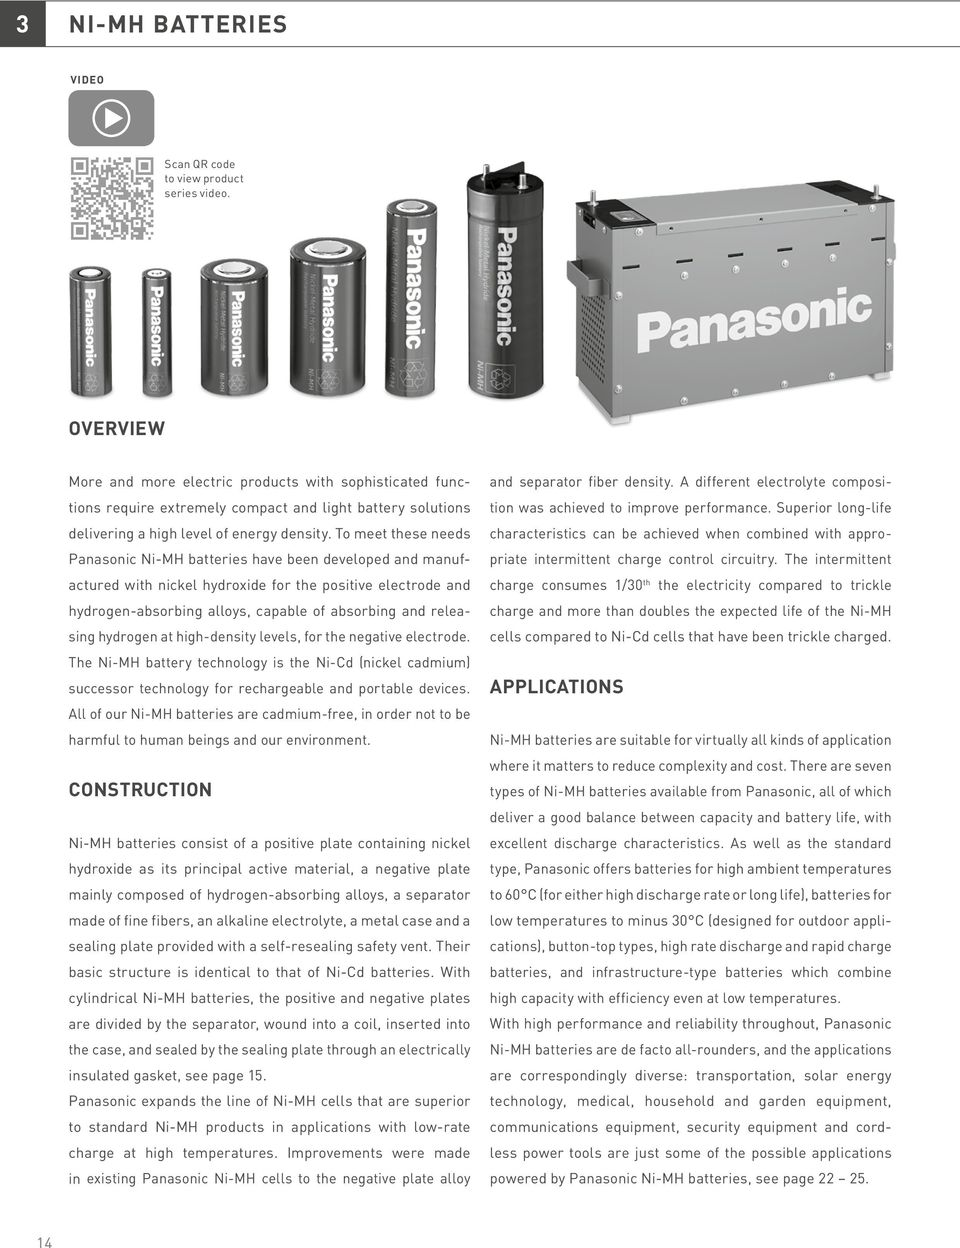 To meet these needs Panasonic Ni-MH batteries have been developed and manufactured with nickel hydroxide for the positive electrode and hydrogen-absorbing alloys, capable of absorbing and releasing